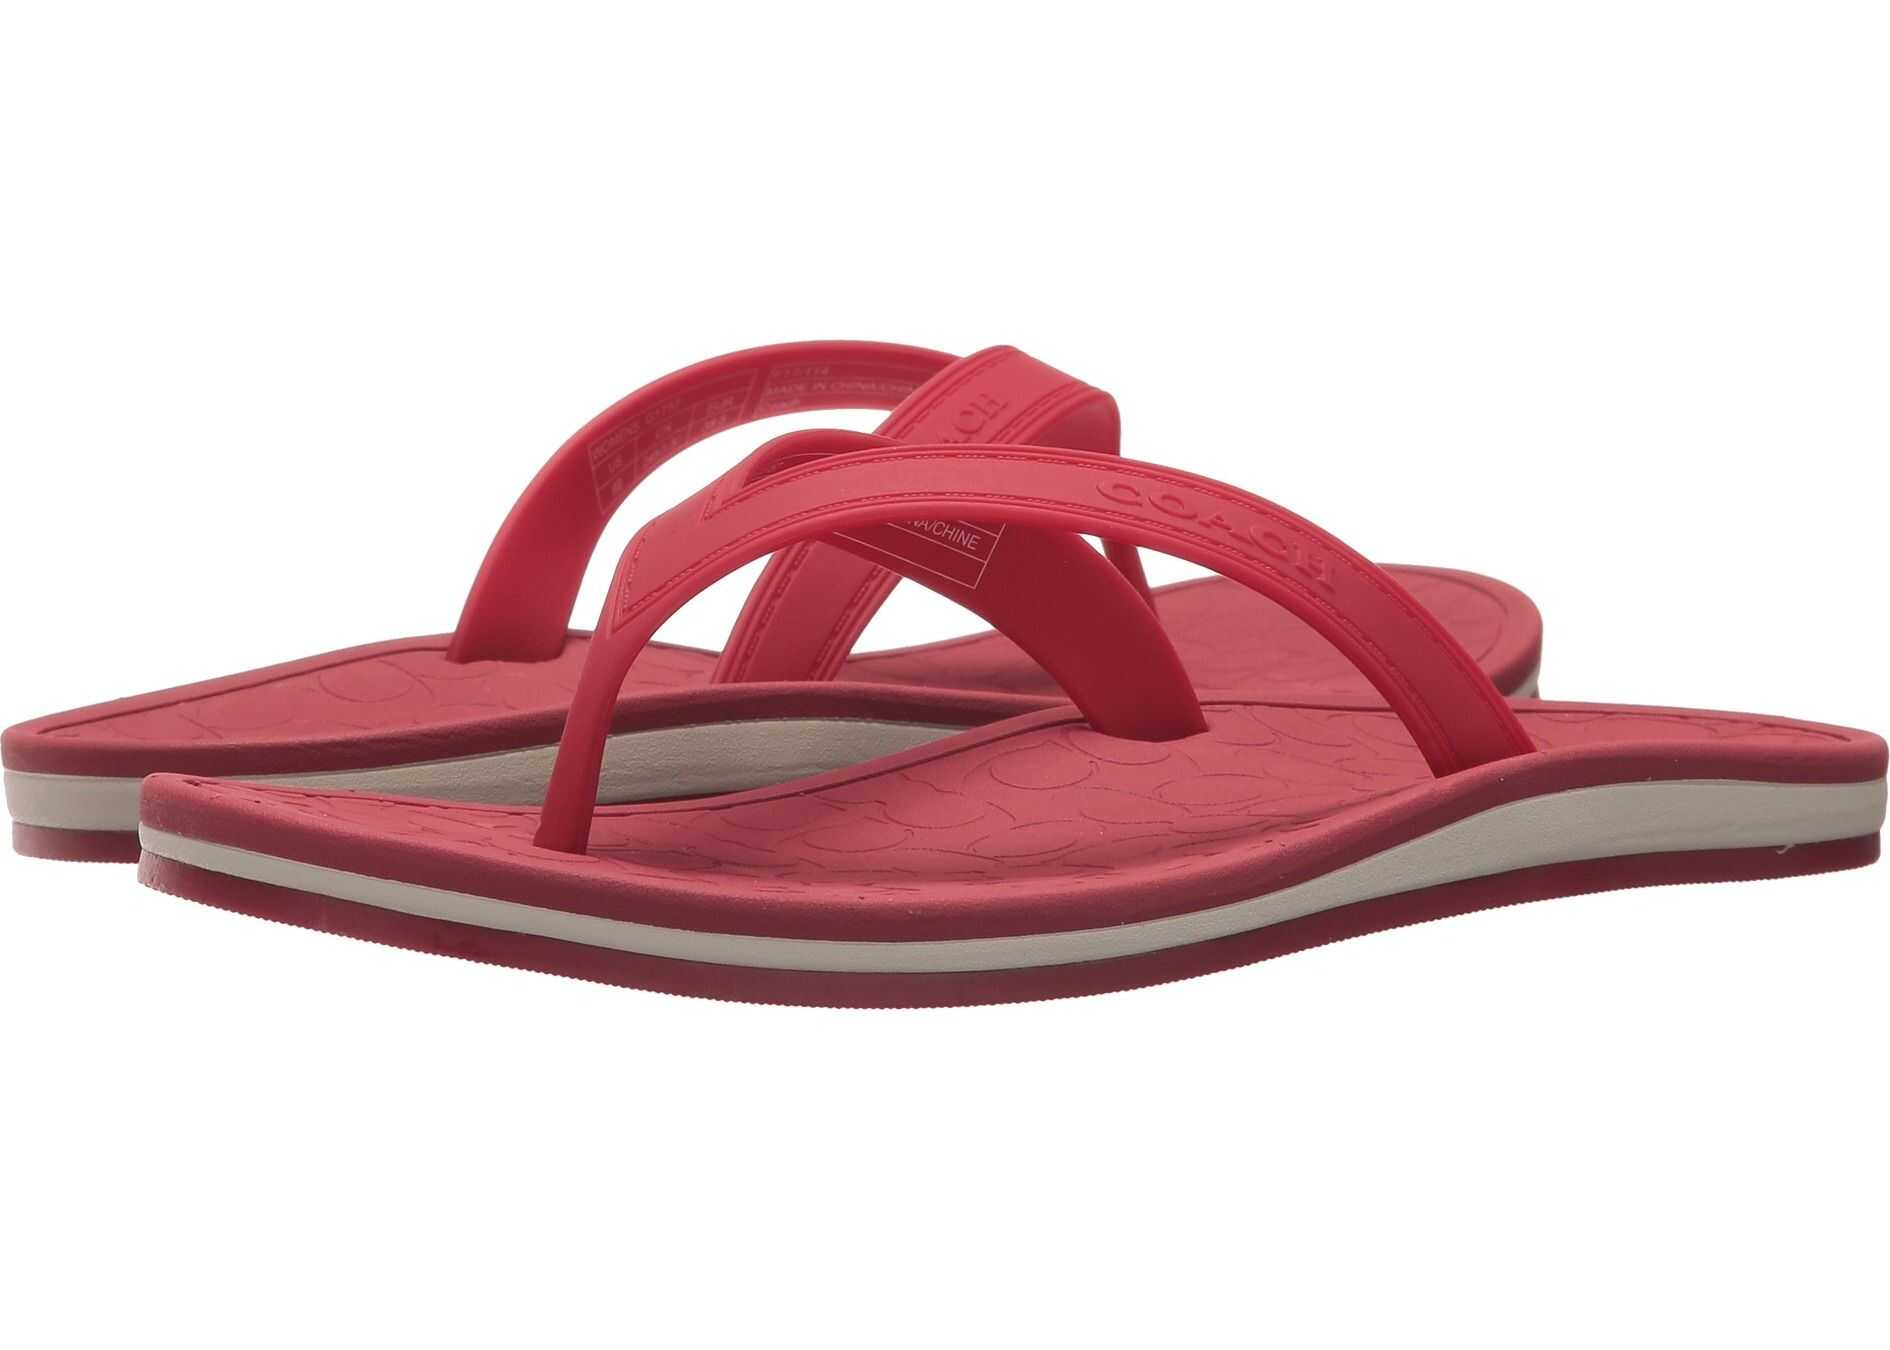 COACH Flip-Flop Red Rubber